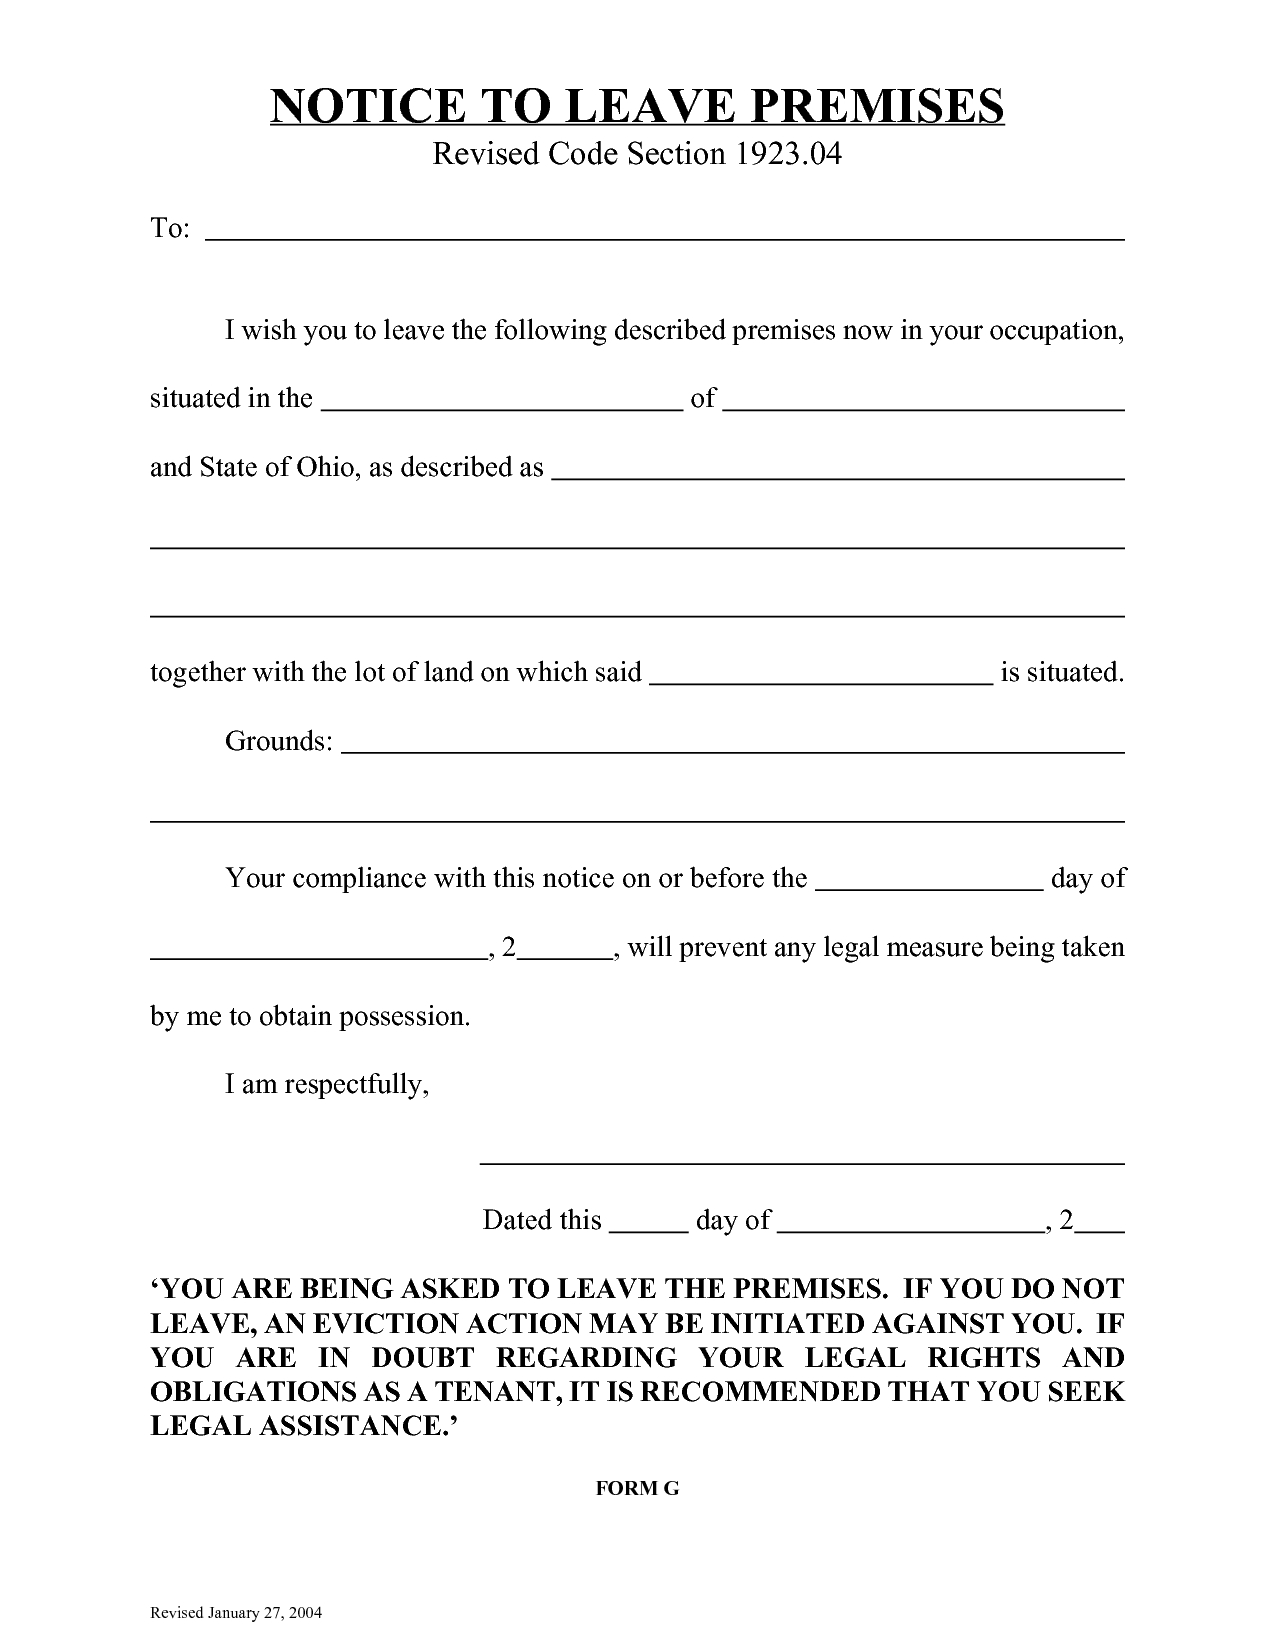 10 Best Images Of Eviction Notice Florida Form Blank Template Via 3 - Free Printable Blank Eviction Notice